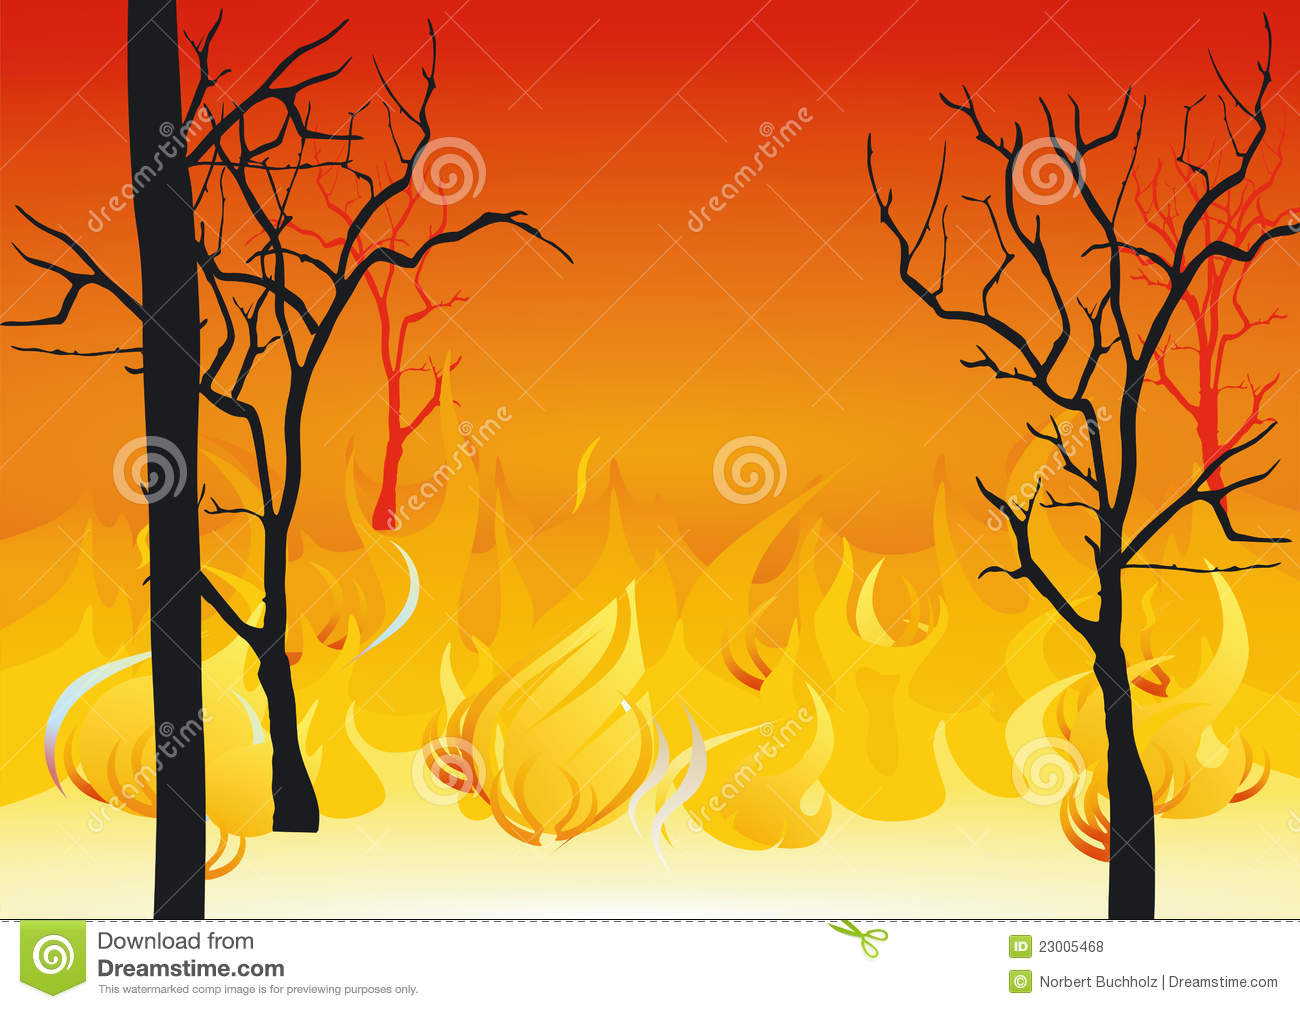 Forest Fires Stock Illustrations.